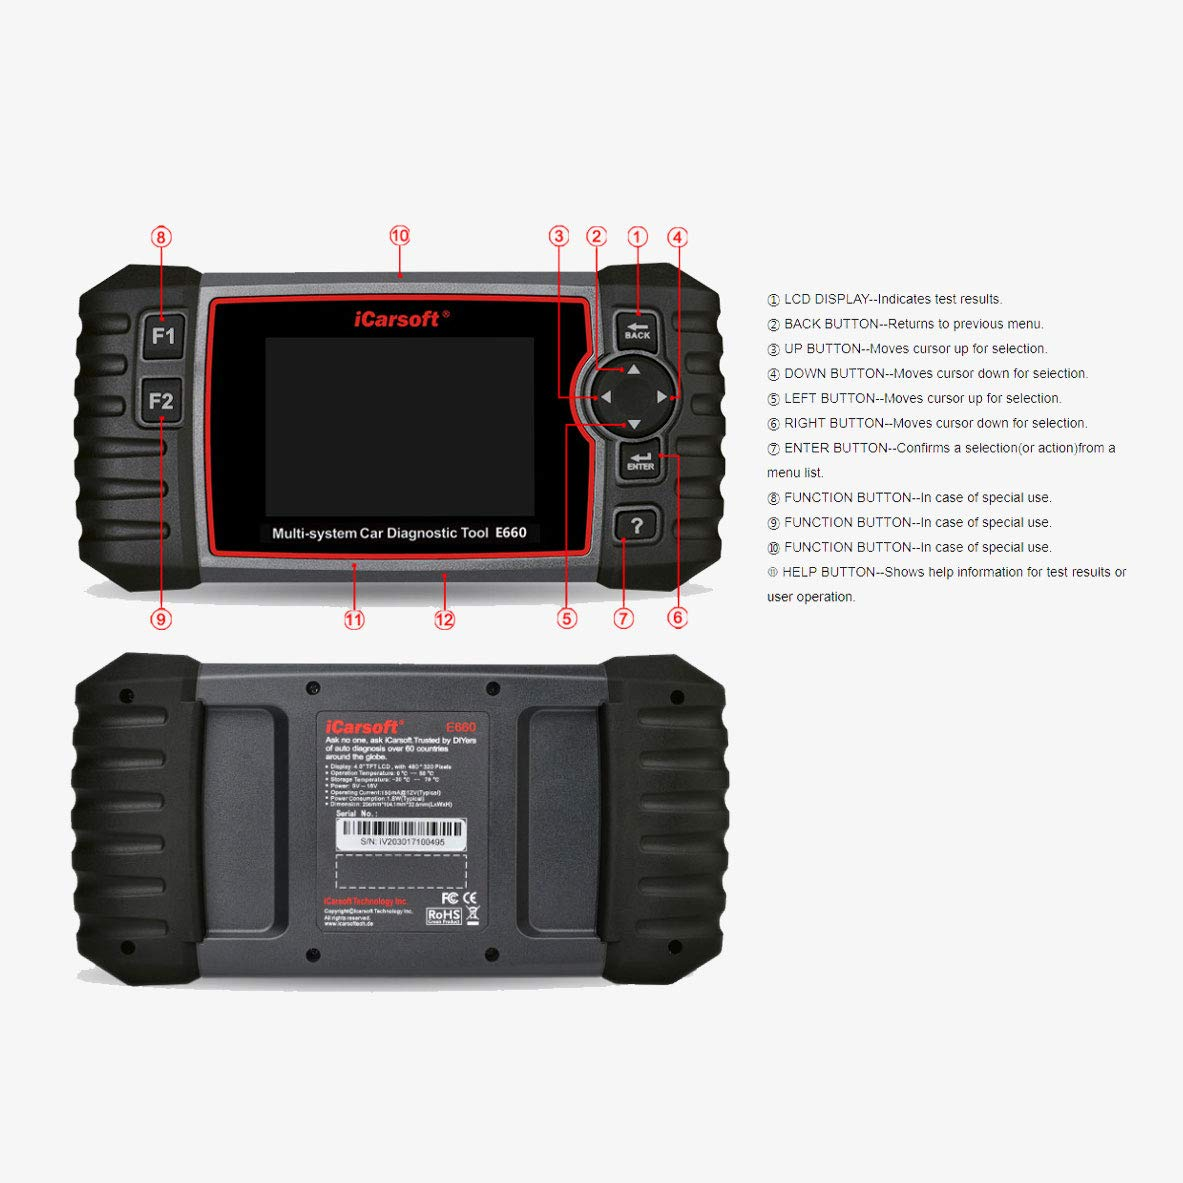 iCarsoft E660 ABS+SRS+SAS+EPB+OBD II Diagnostic Tool by iCarsoft (Image #9)